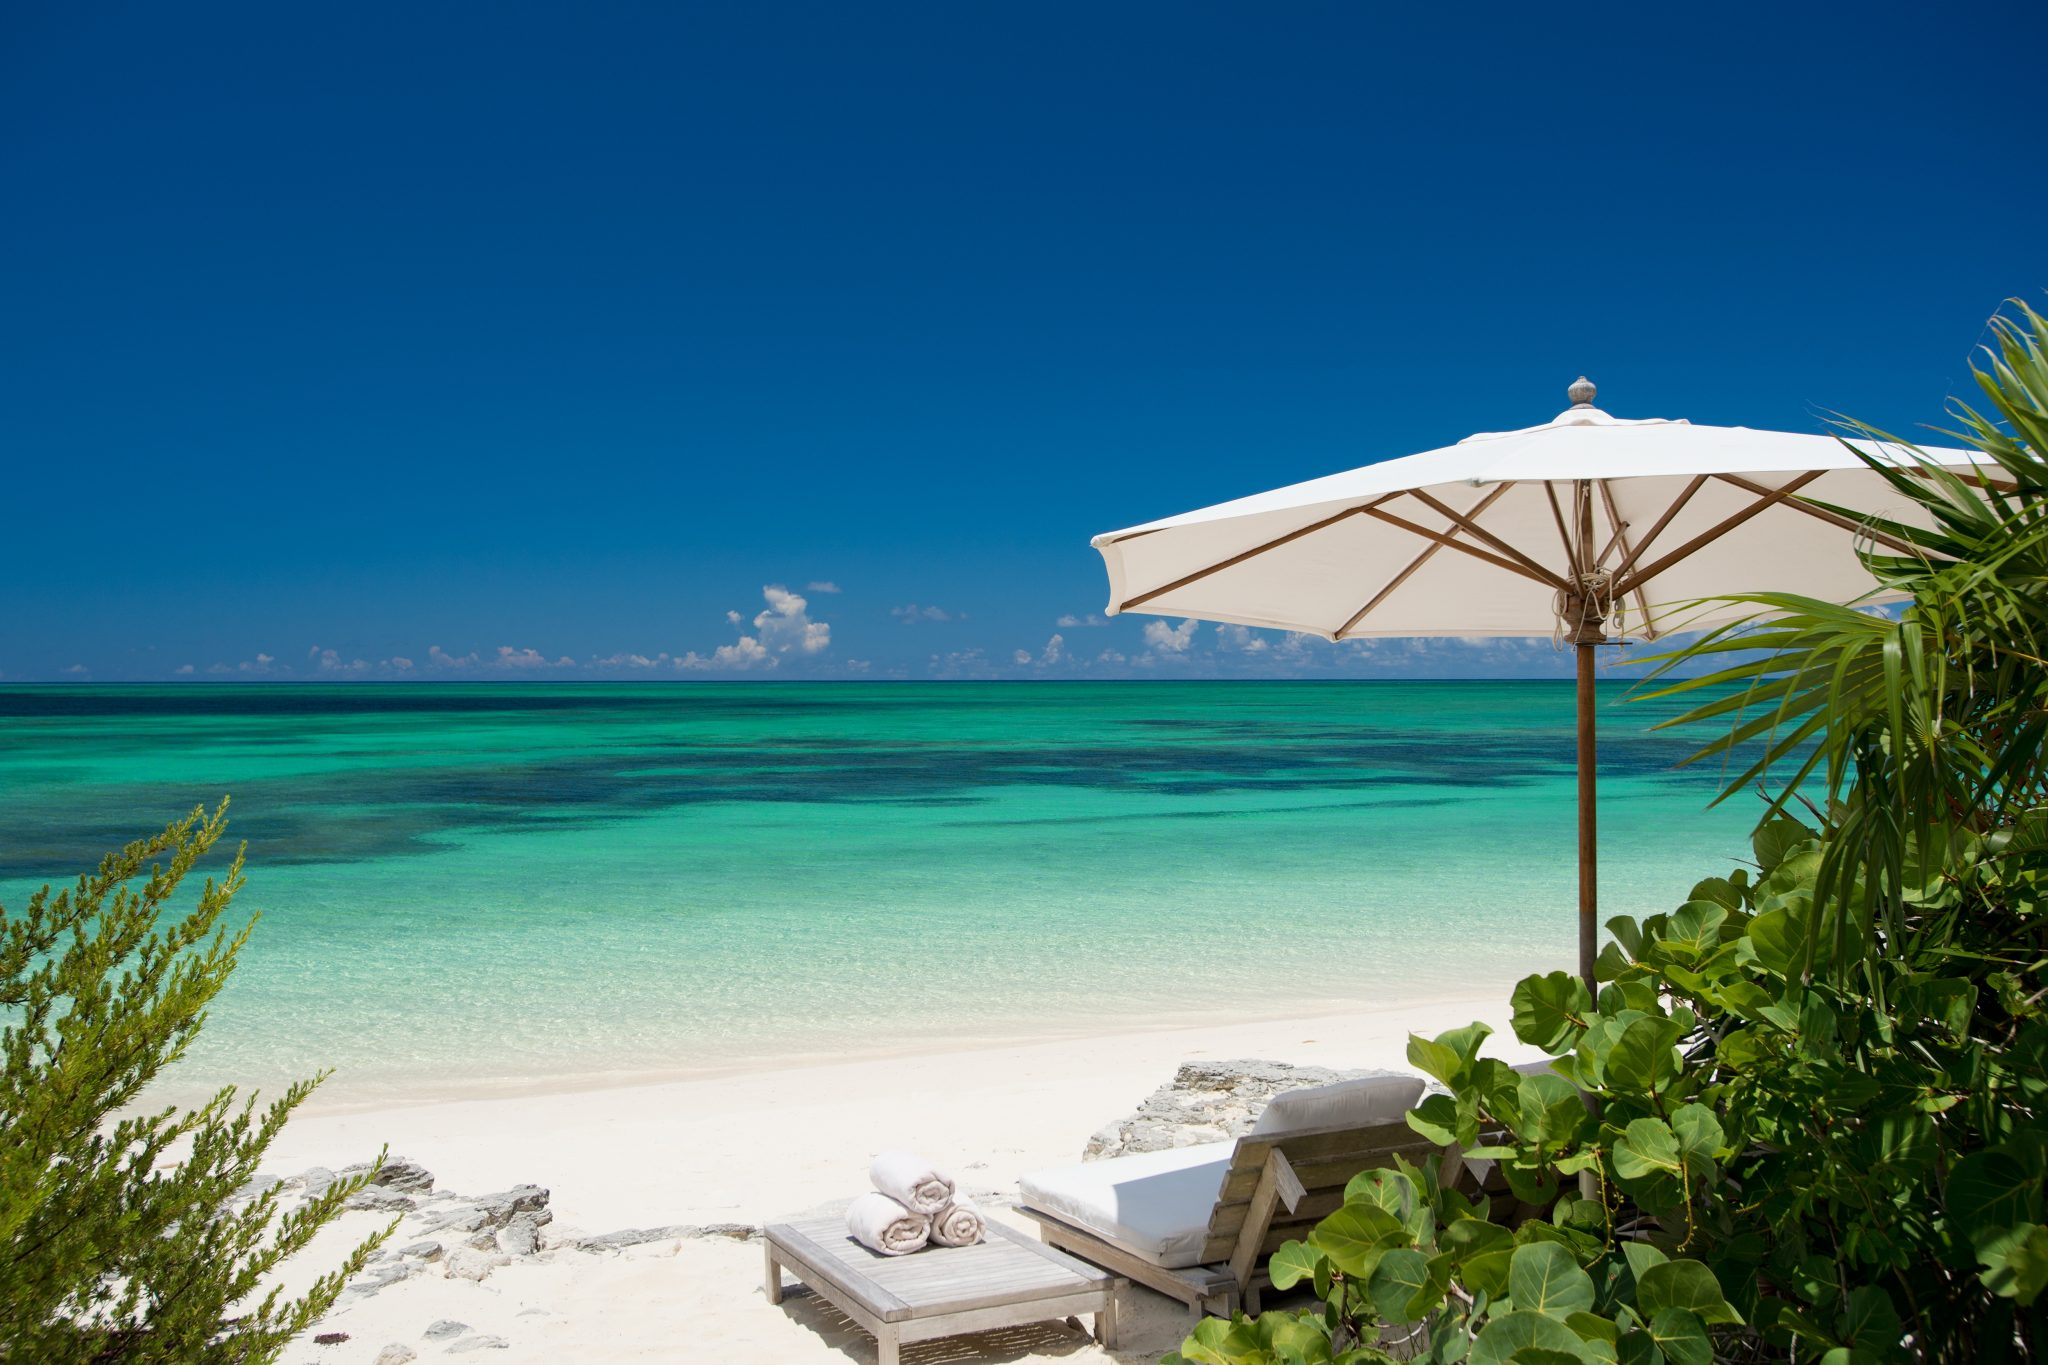 lounger and umbrella on beach at Turks and Caicos retreat